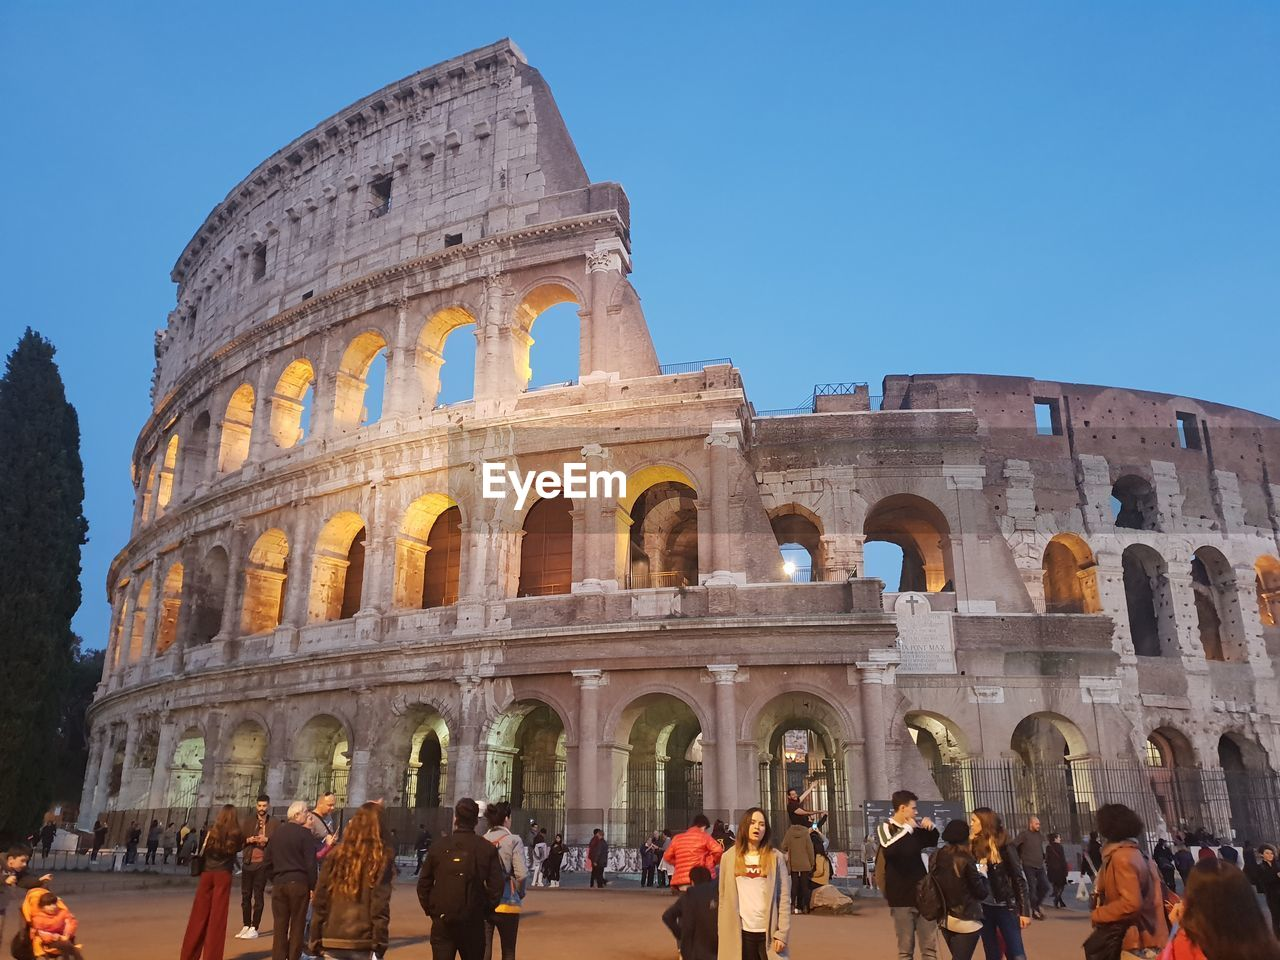 group of people, arch, large group of people, built structure, crowd, real people, tourism, architecture, travel destinations, women, travel, history, the past, sky, men, adult, lifestyles, building exterior, amphitheater, ancient civilization, ancient, visit